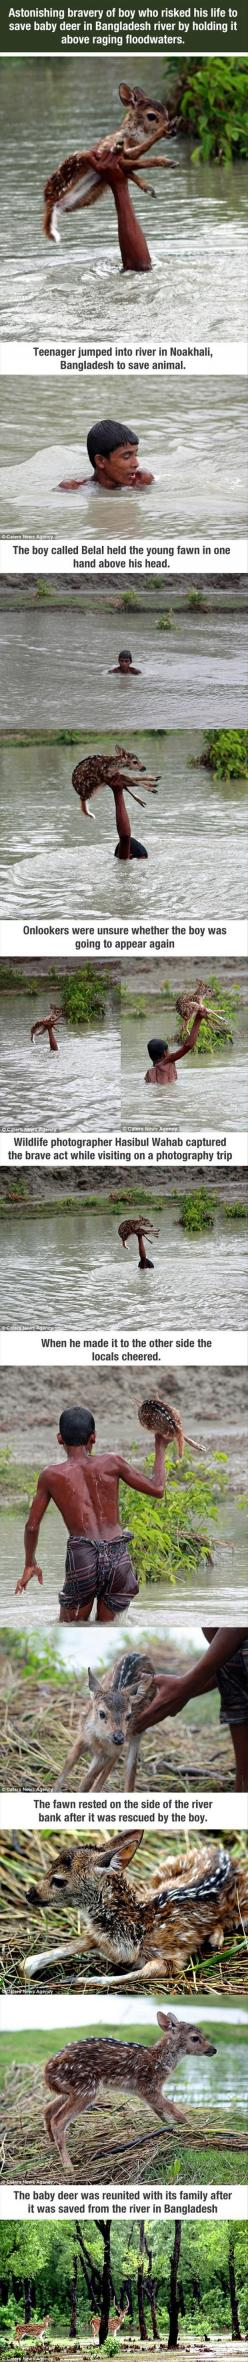 Faith in humanity restored: Baby Deer, Restore Your Faith In Humanity, Faith Restored In Humanity, Hero, Faith In Humanity Restored, Animal Stories, Amazing People, Boy, Human Kindness